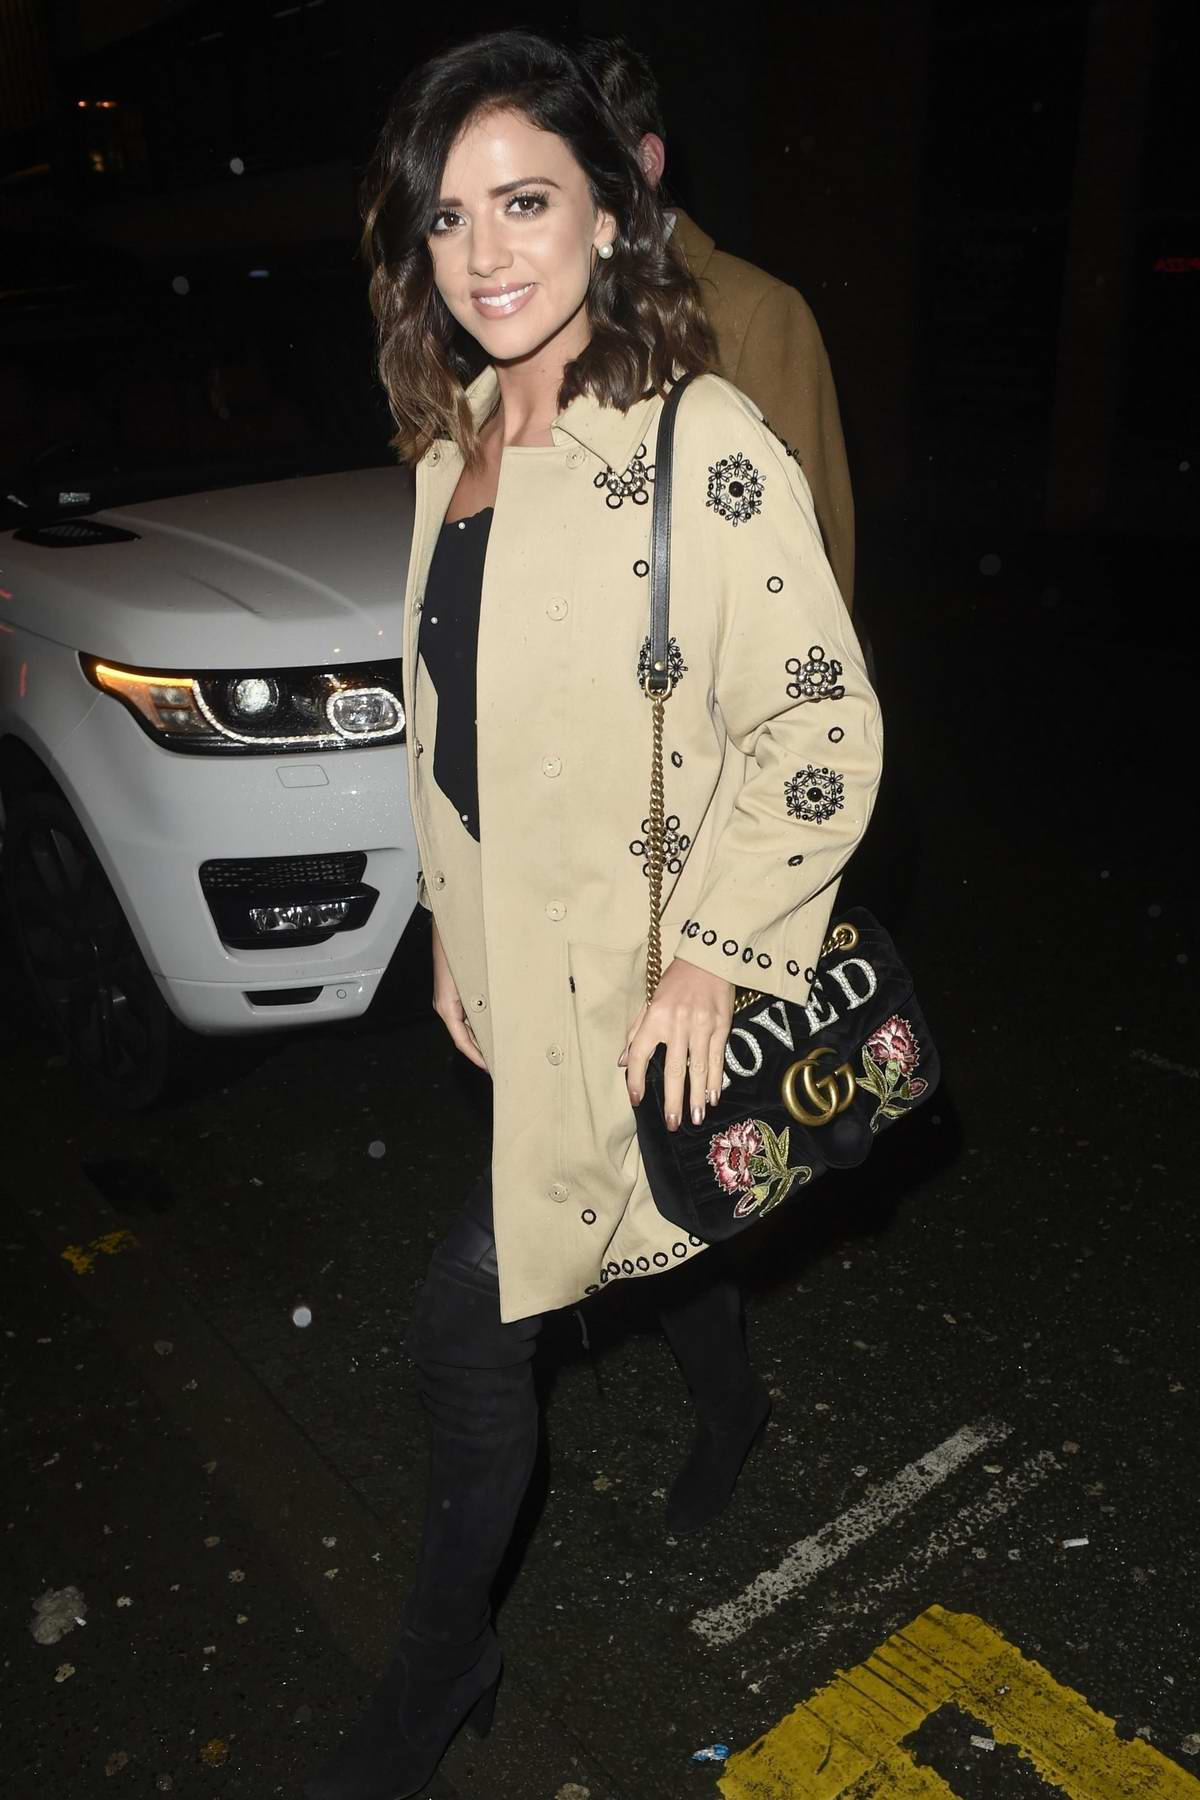 Lucy Mecklenburgh spotted at The Smokehouse Bar and Restaurant in Manchester, UK